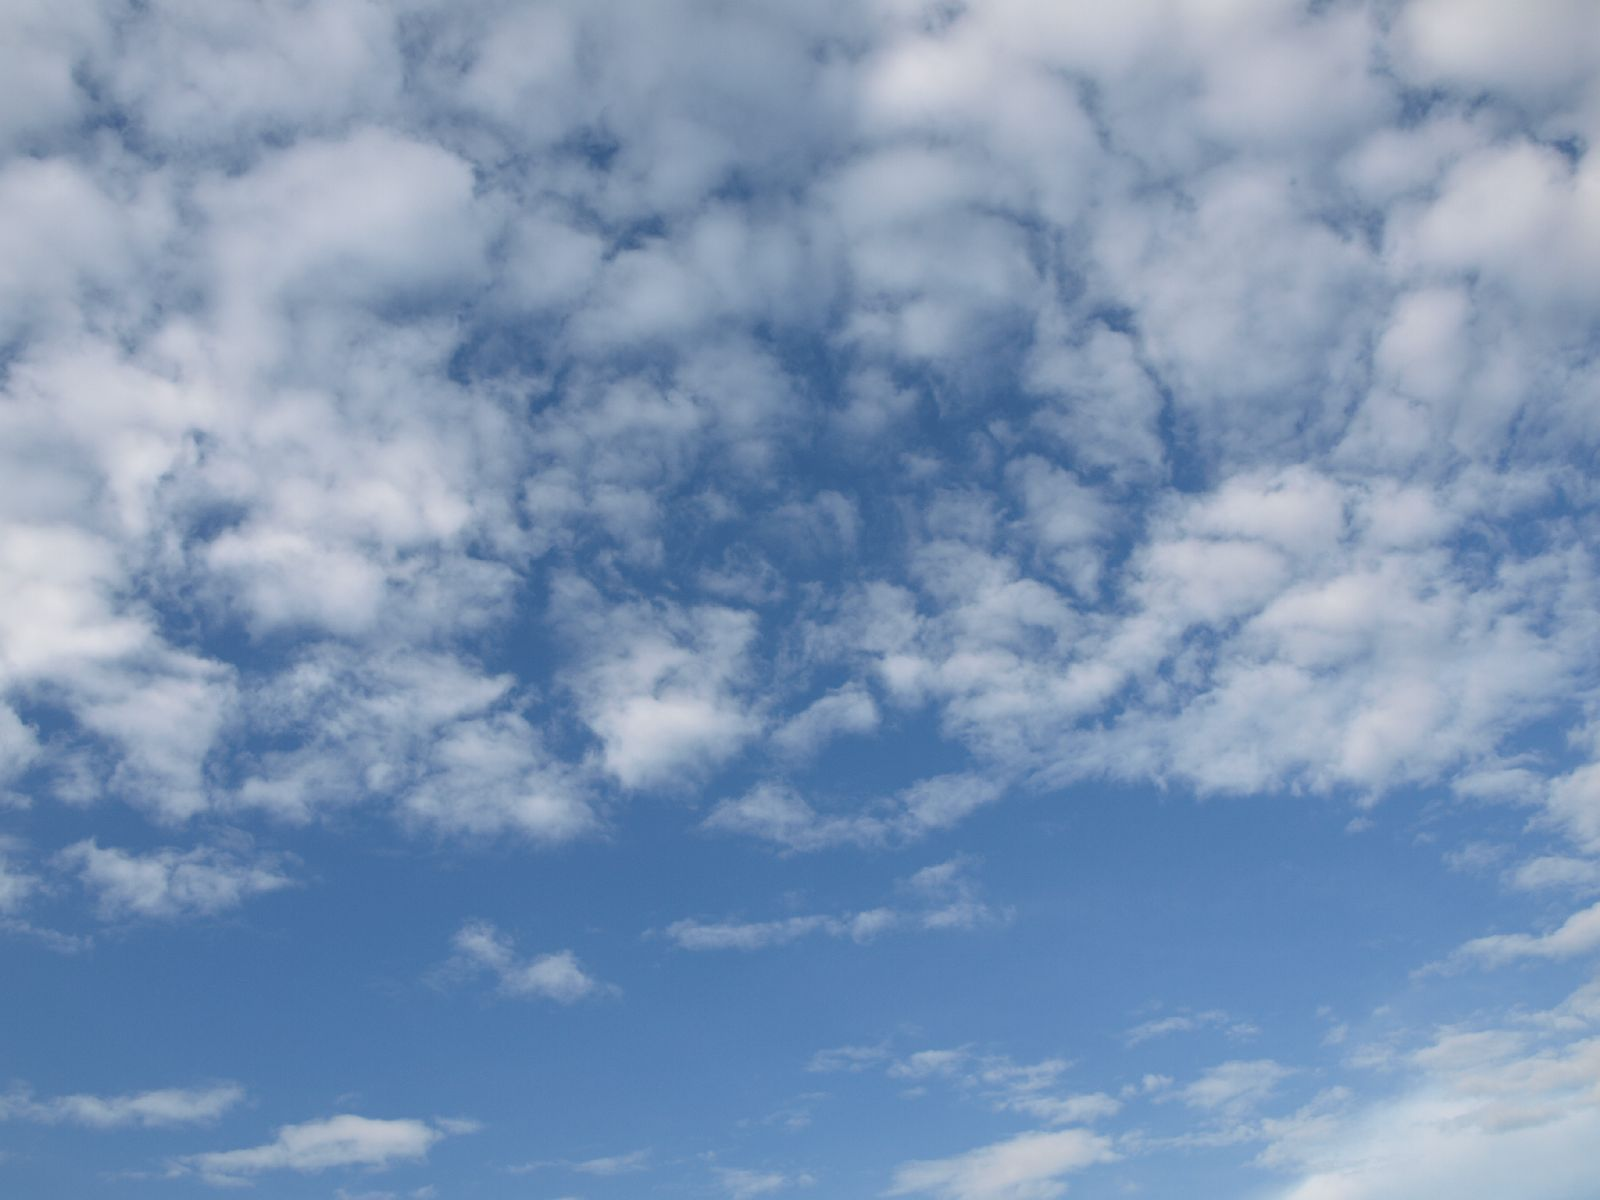 Sky_Clouds_Photo_Texture_A_P4201526